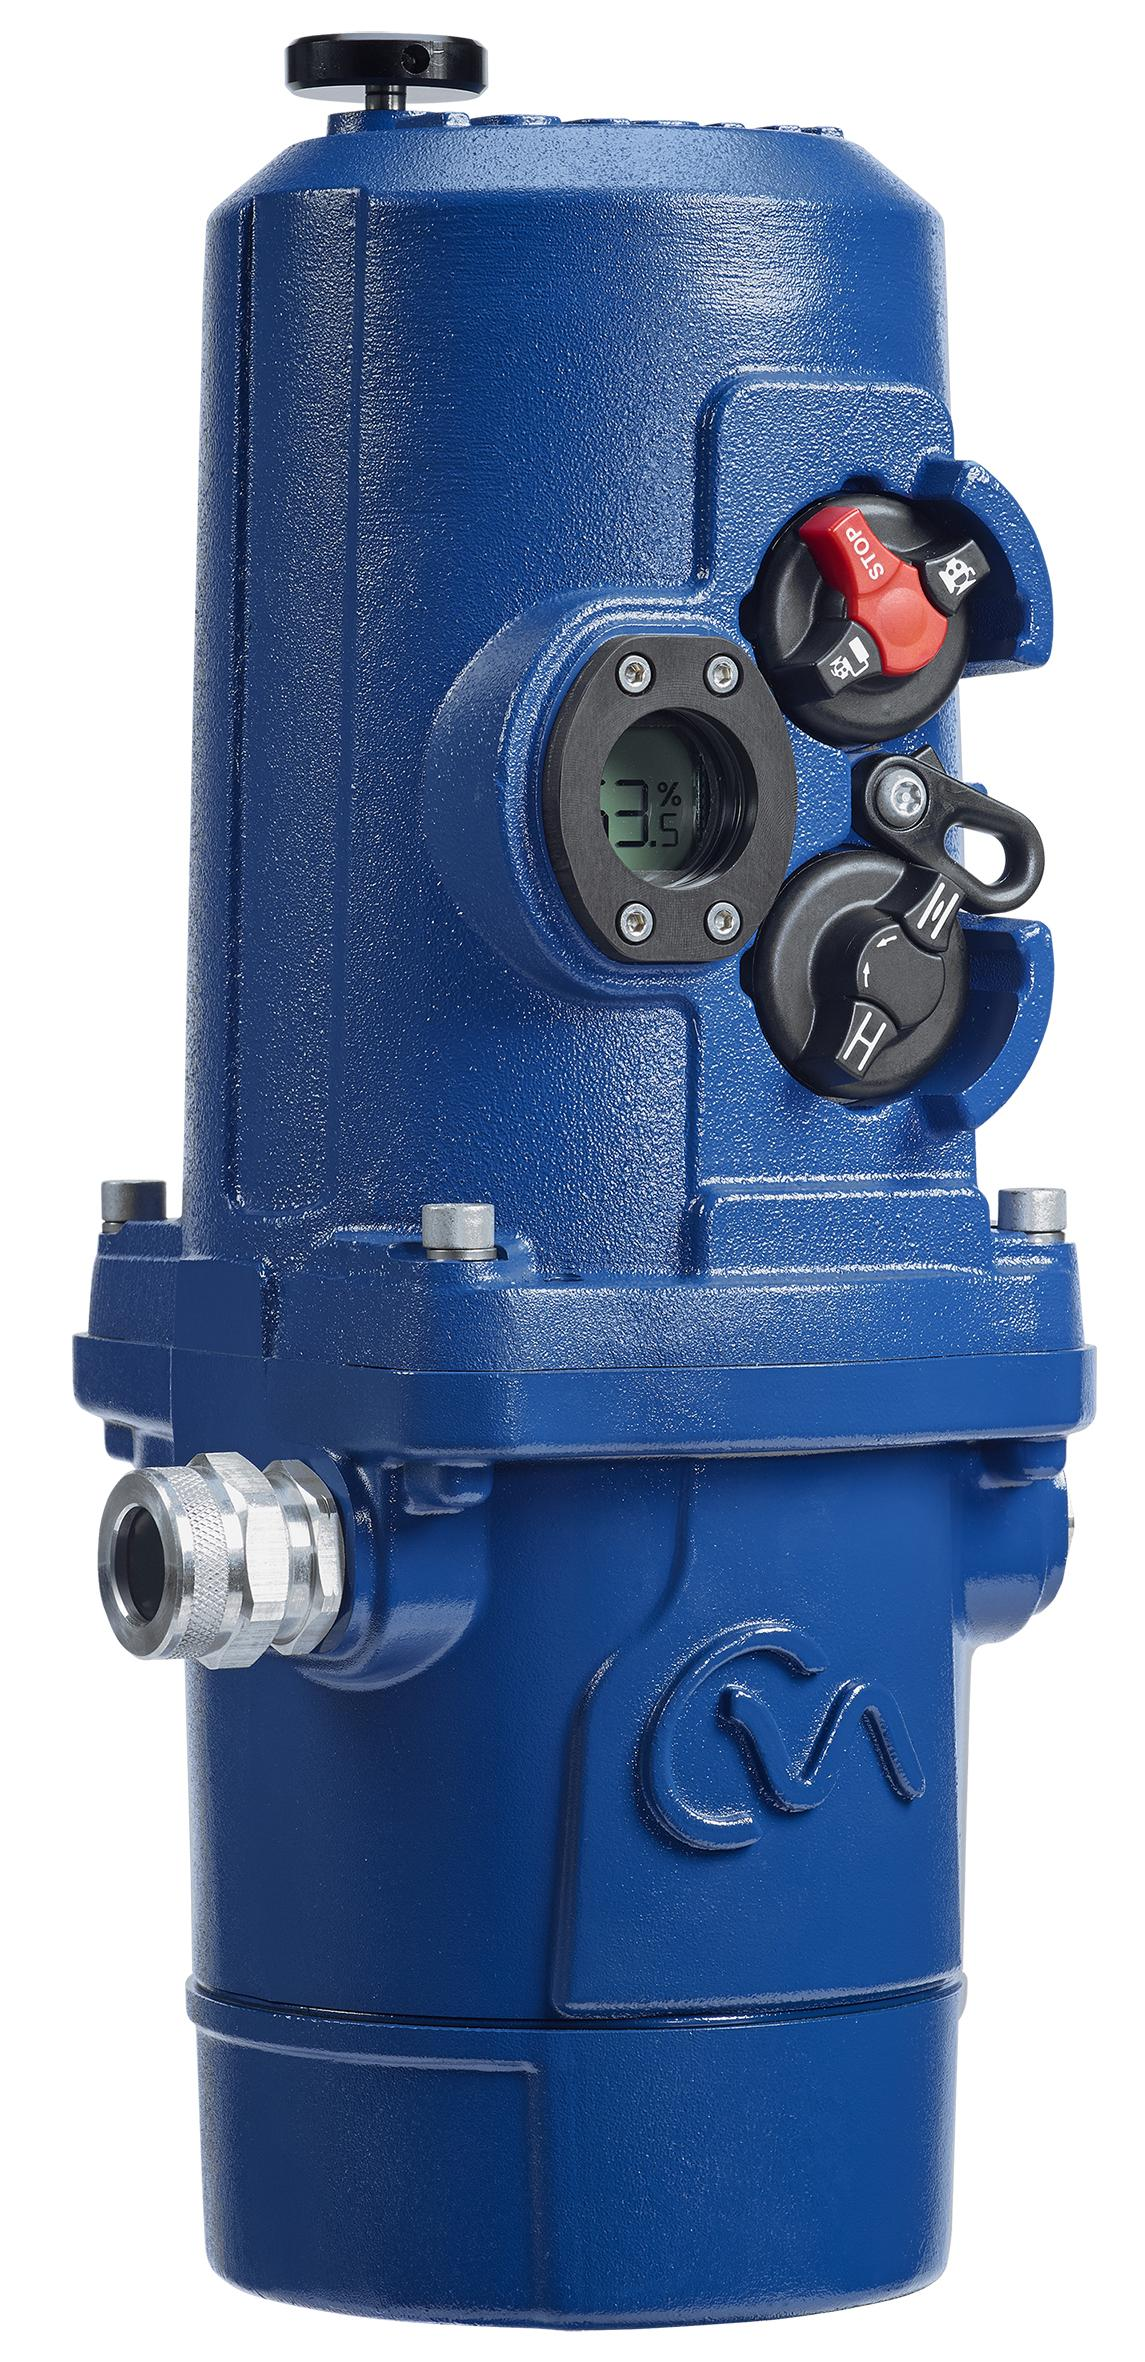 The actuators are designed for process control valve, metering pump and damper applications